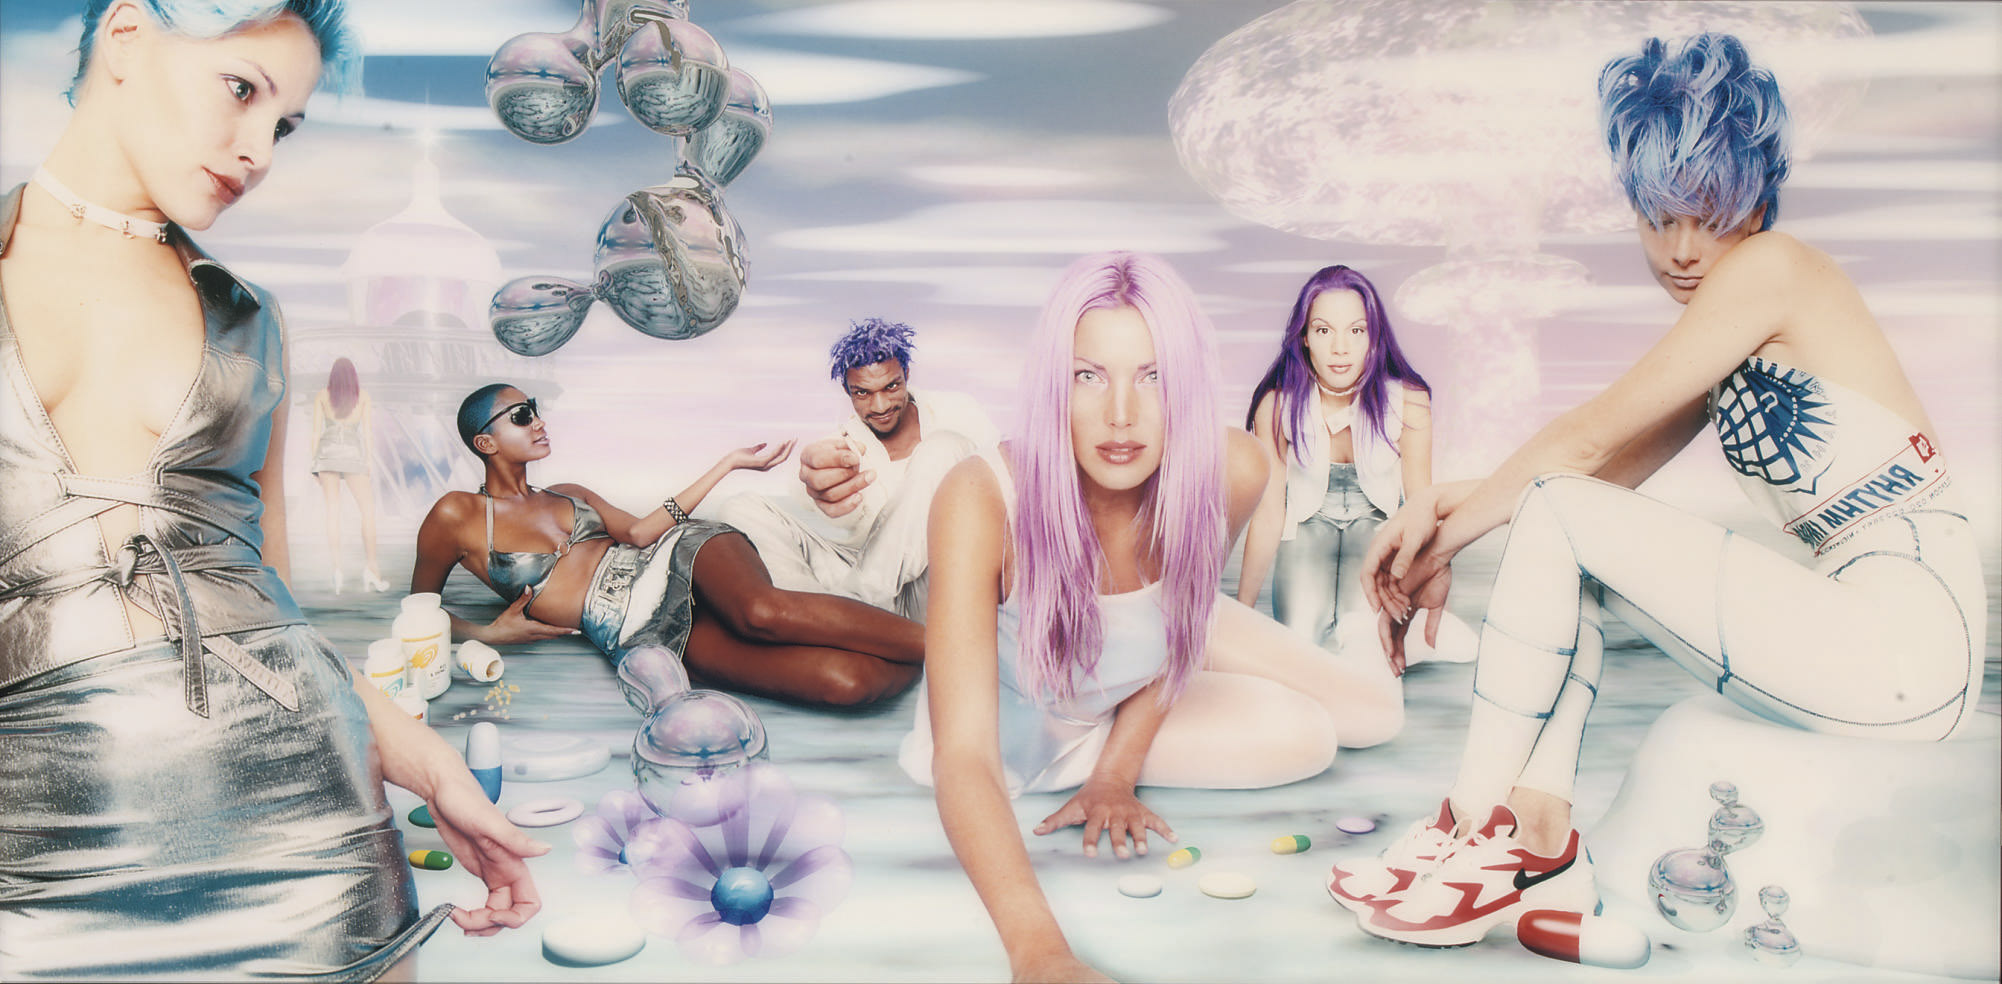 White chill (from Virtualistic Vibes series)